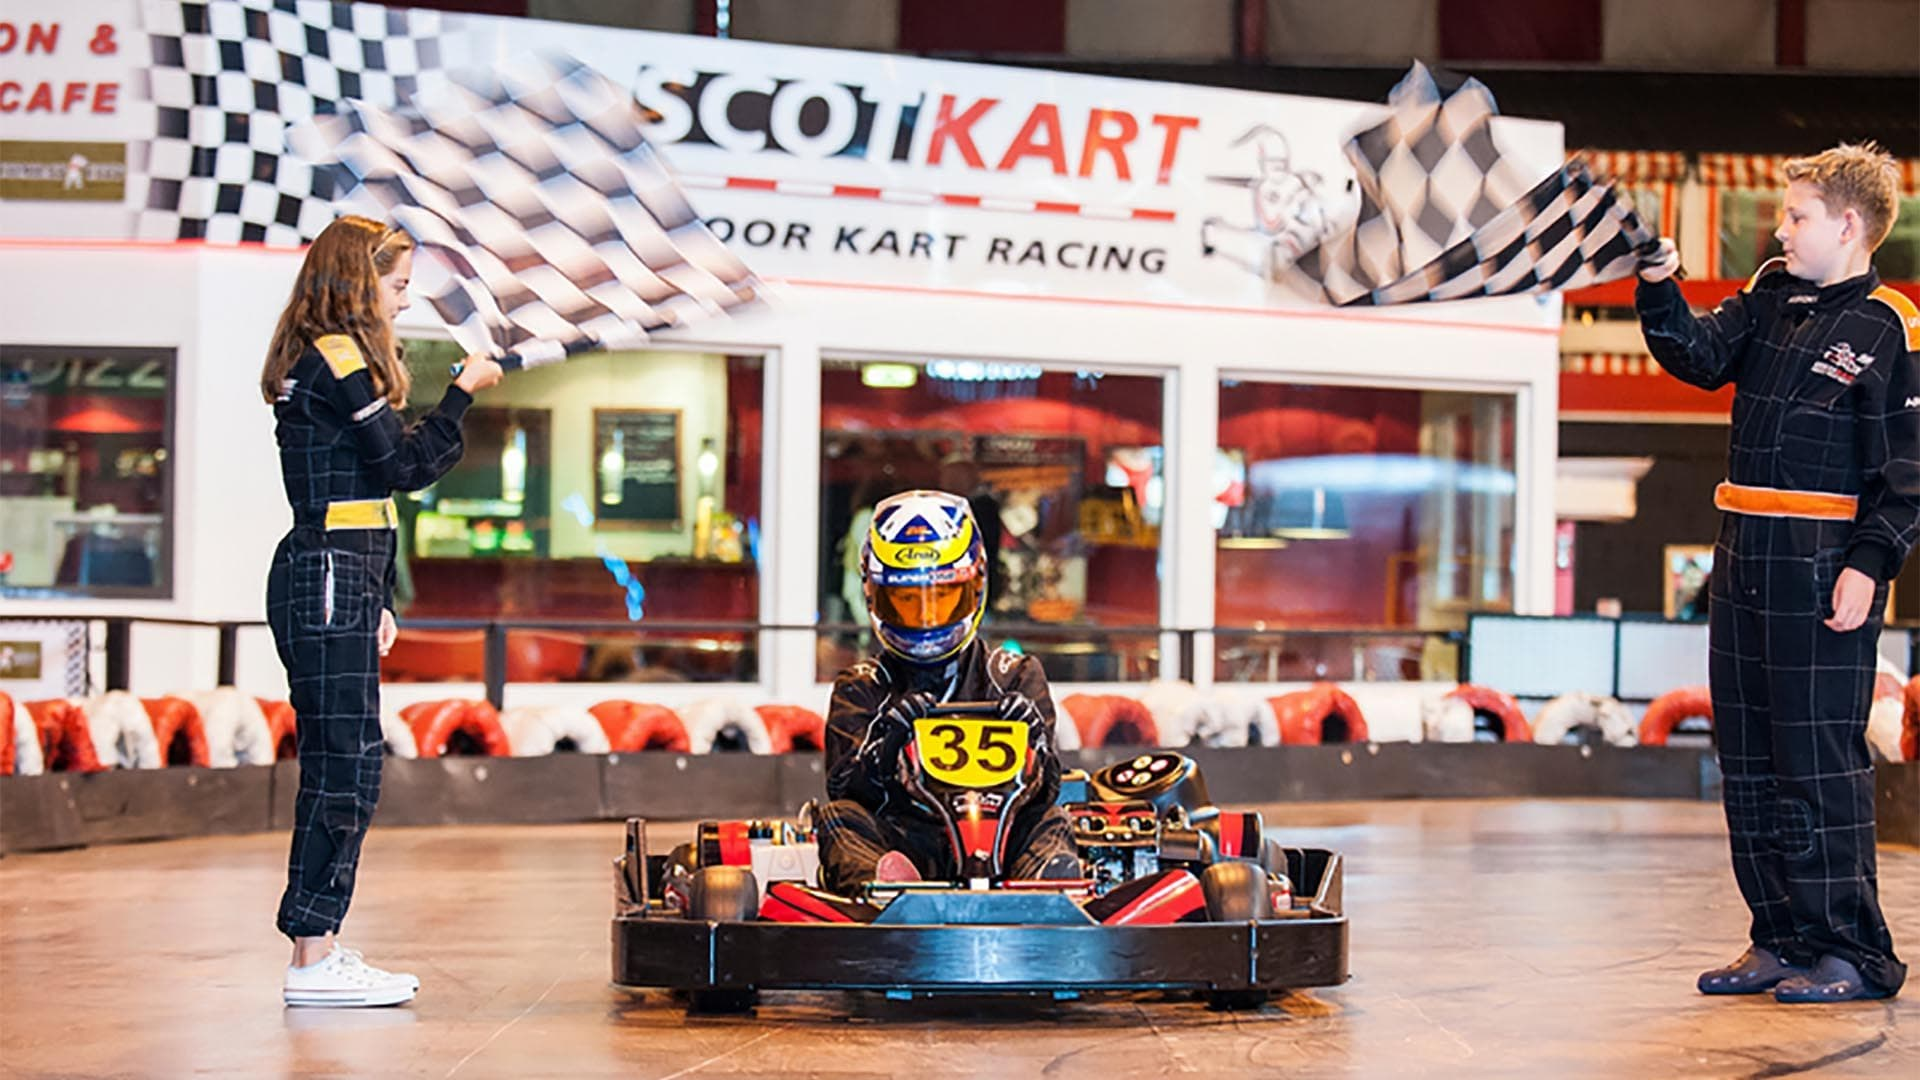 UNBELIEVABLE GO KARTING OFFERS - UP TO HALF PRICED KARTING